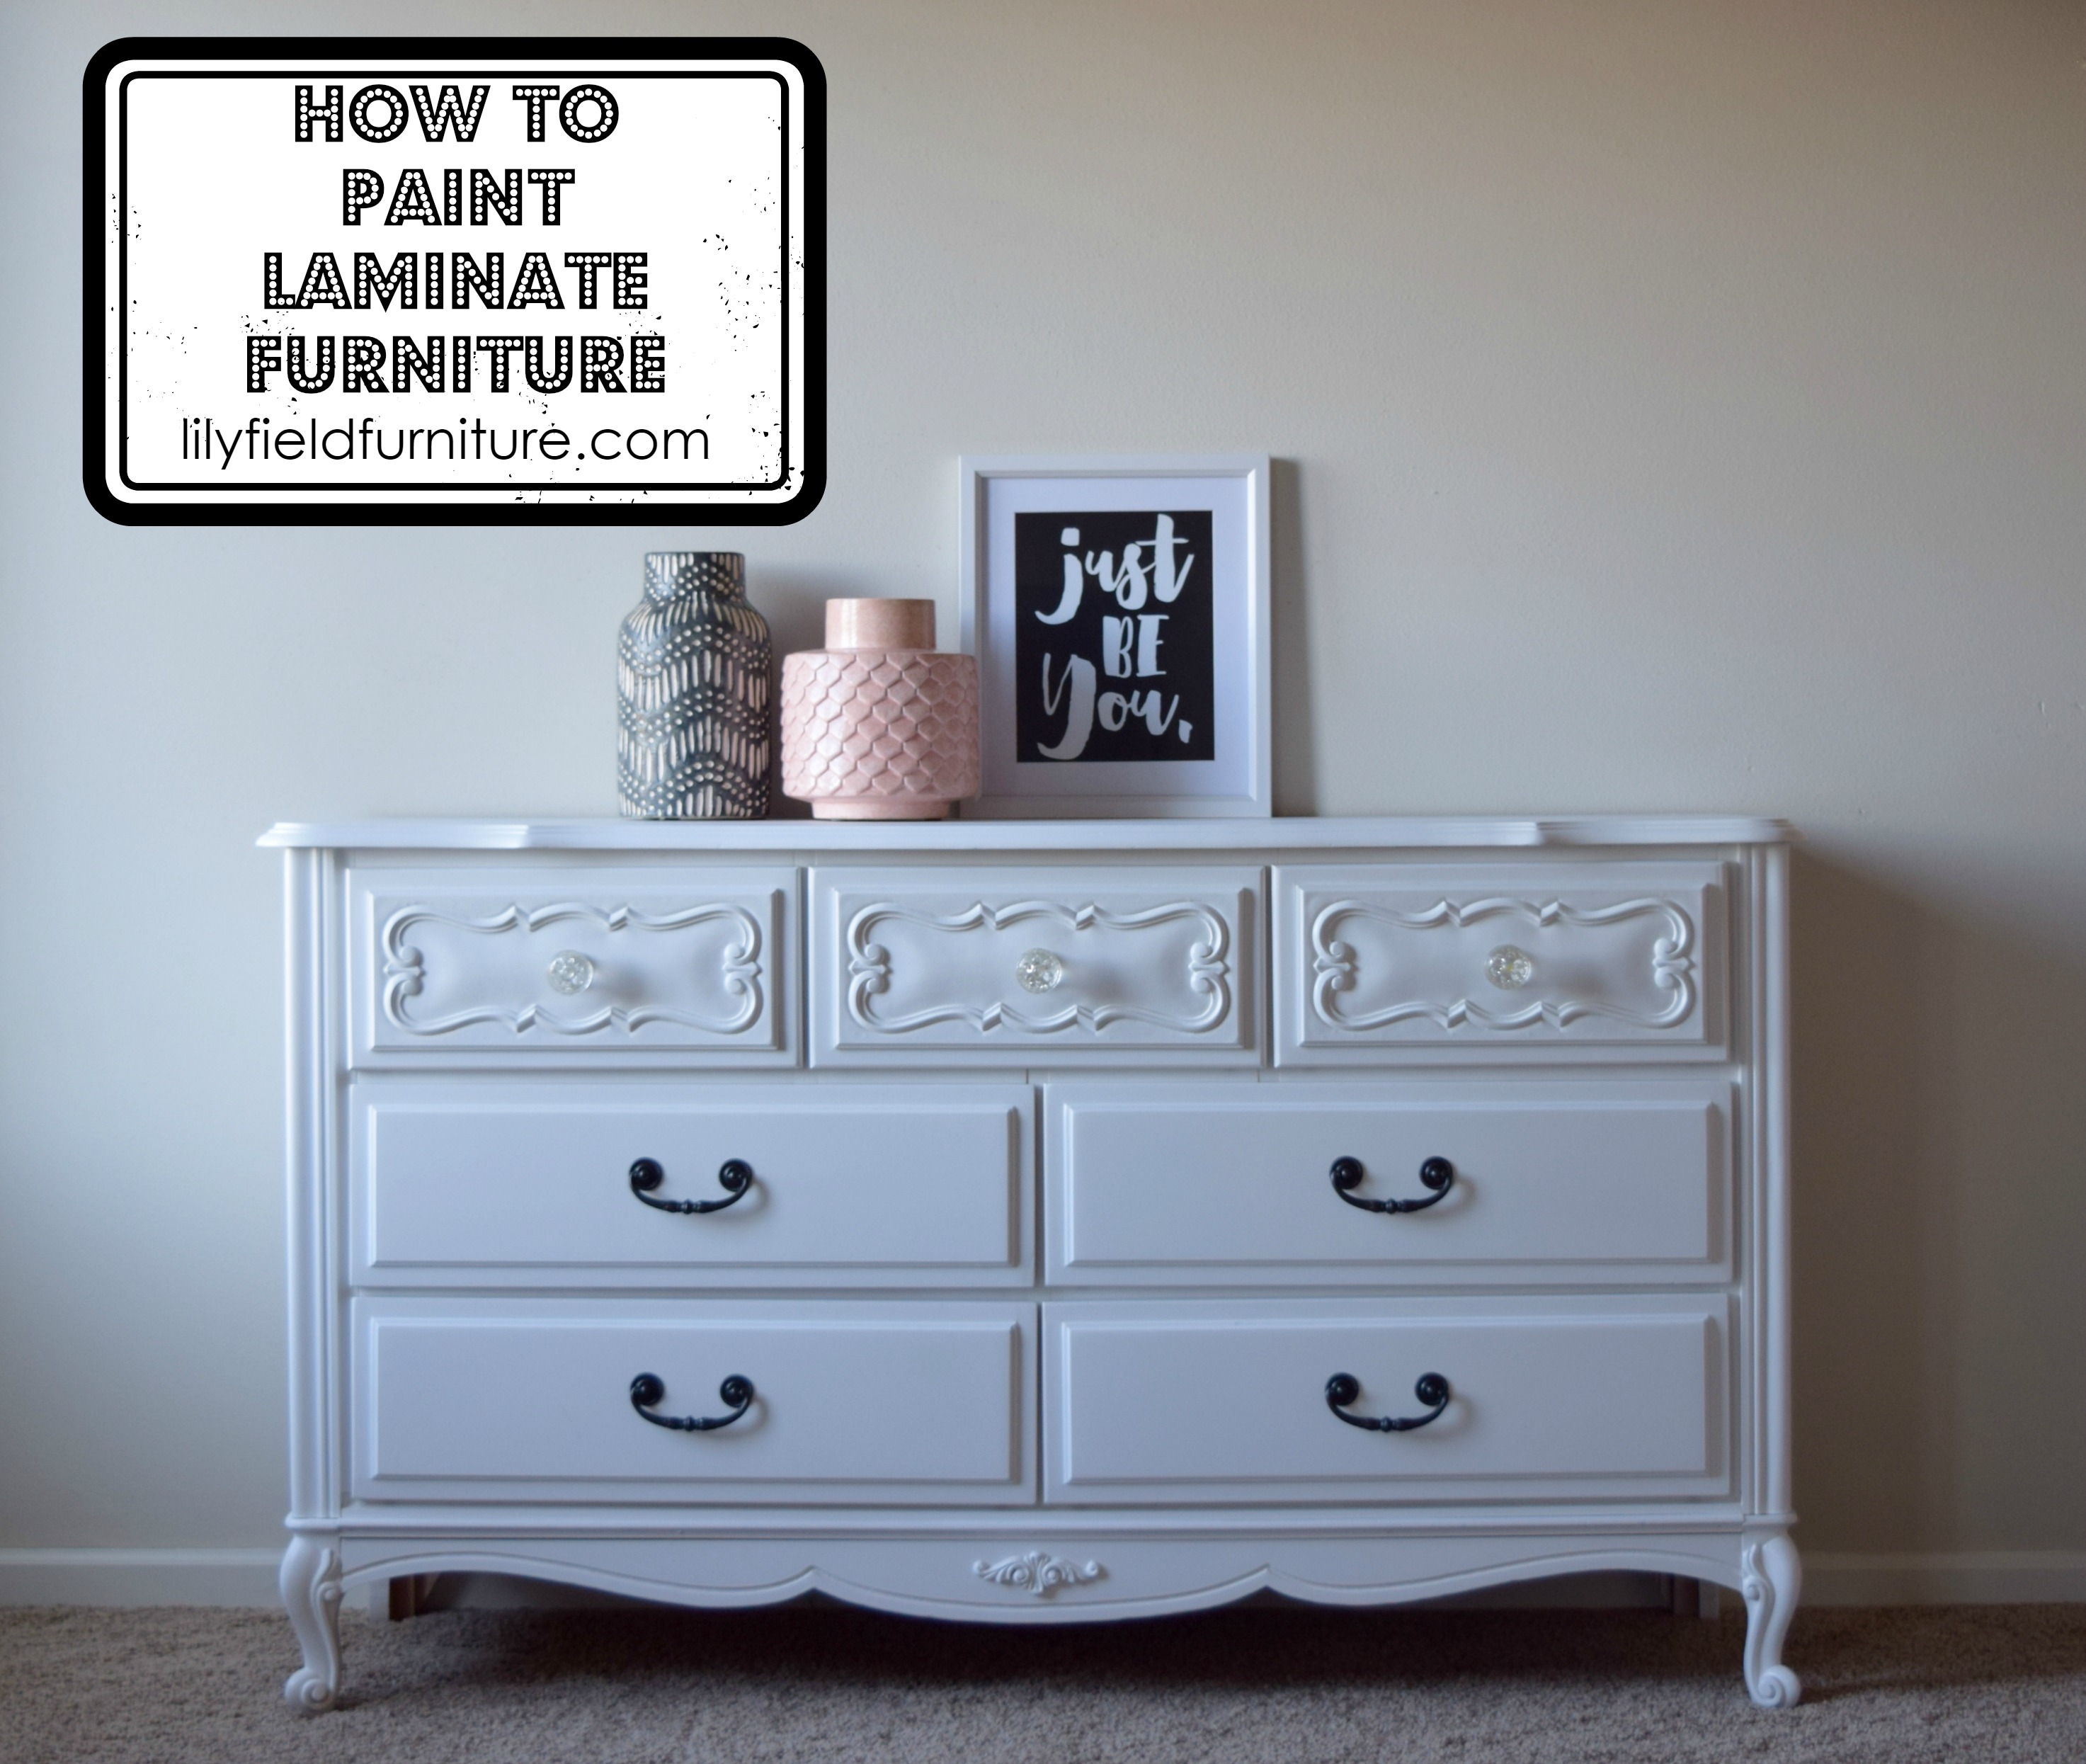 Painting Laminate Furniture Diy Tutorial Lily Field Co